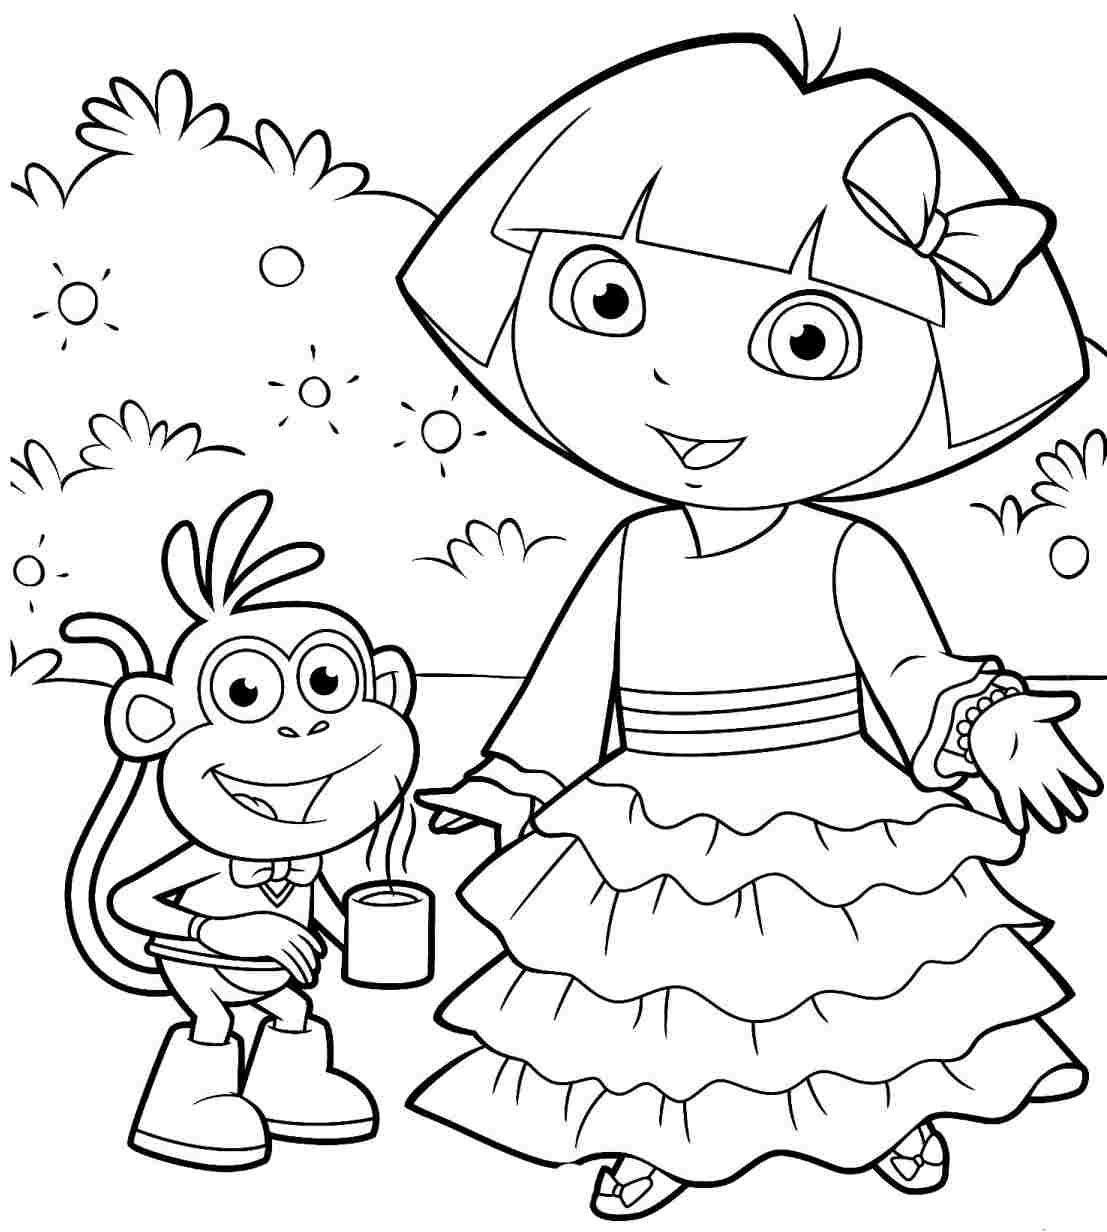 swiper coloring page dora coloring pages cutecoloringcom swiper page coloring